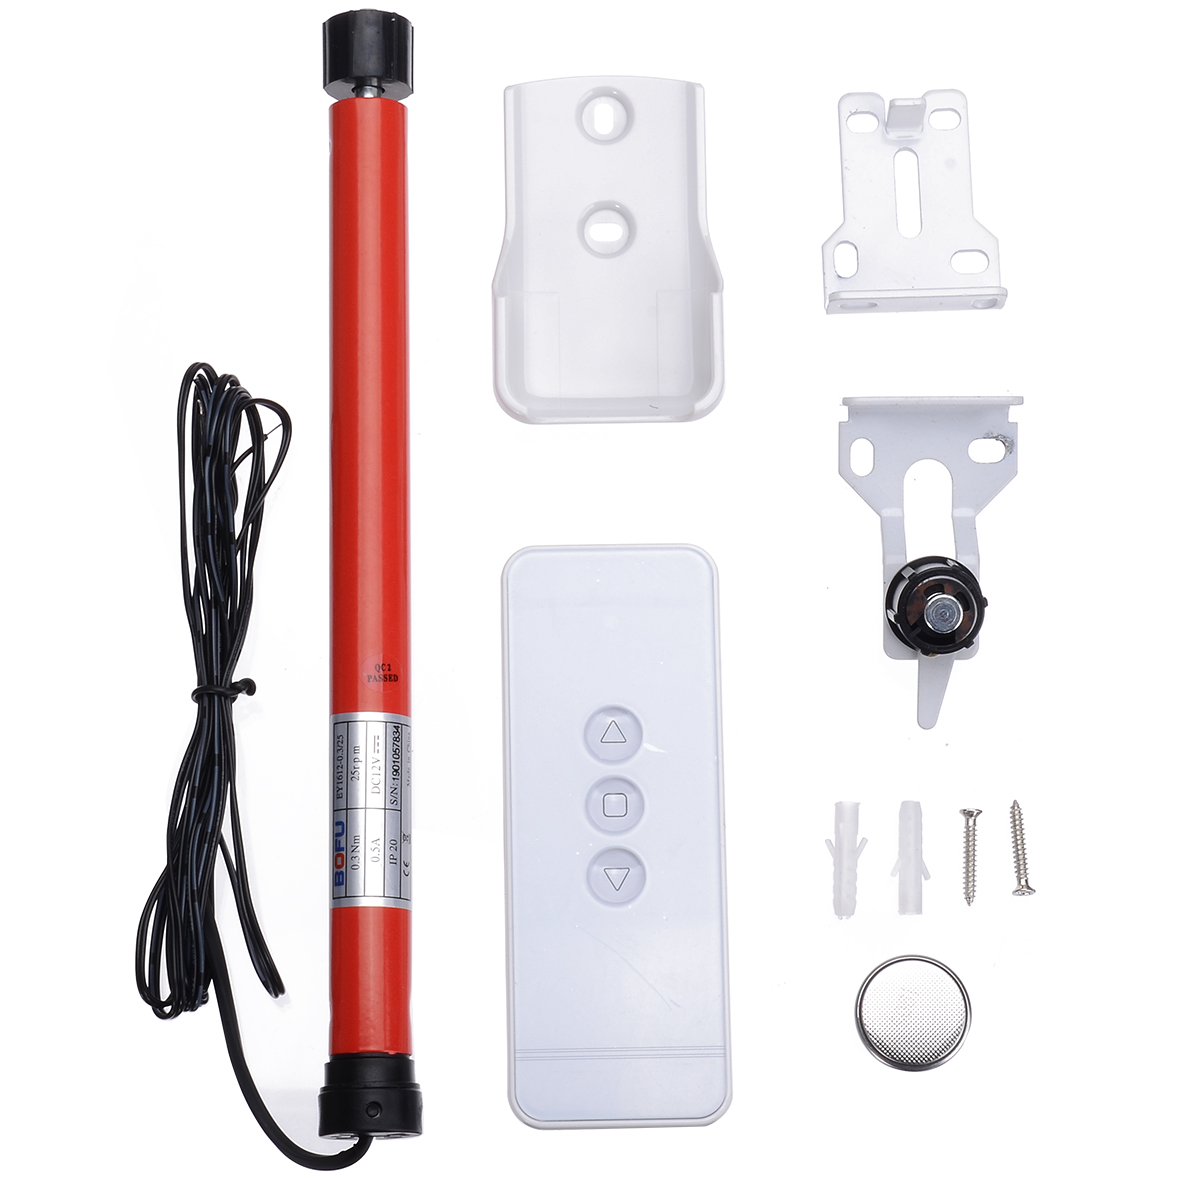 12V Automatic DIY Roller Shade Motor Tubular Electric Curtains Motor Roller blind shutters Intelligent Remote Control